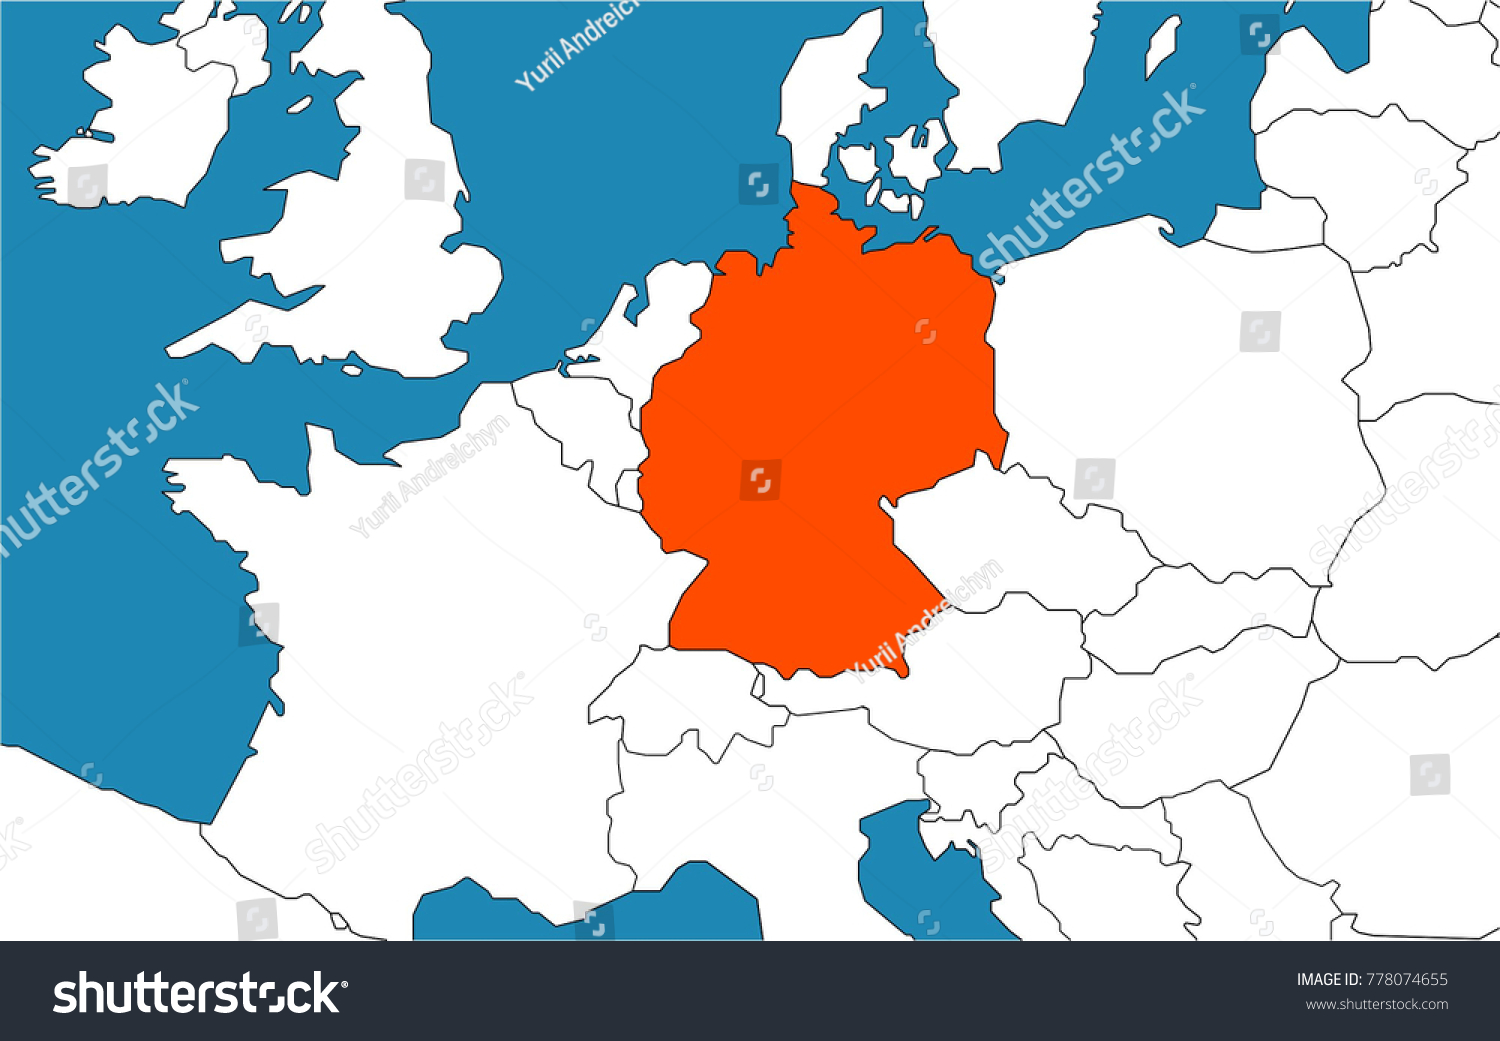 germany on map europe stock vector shutterstock